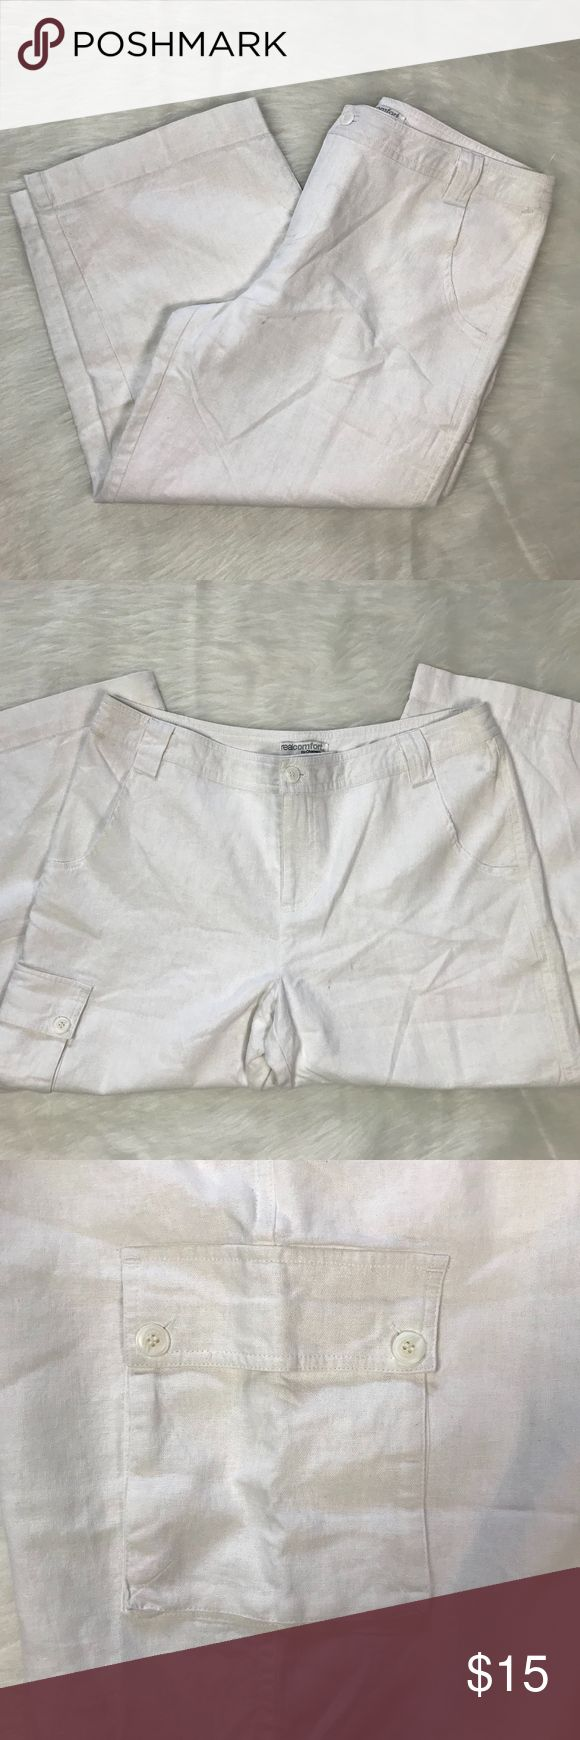 Real Comfort by Chadwicks NWOT Women's White Linen Real Comfort by Chadwicks  New without Tags Capris 55% Linen, 45% Rayon White Cargo Pocket  Machine Wash Cold Delicate Cycle Line Dry Medium Steam Iron Chadwicks Pants Capris